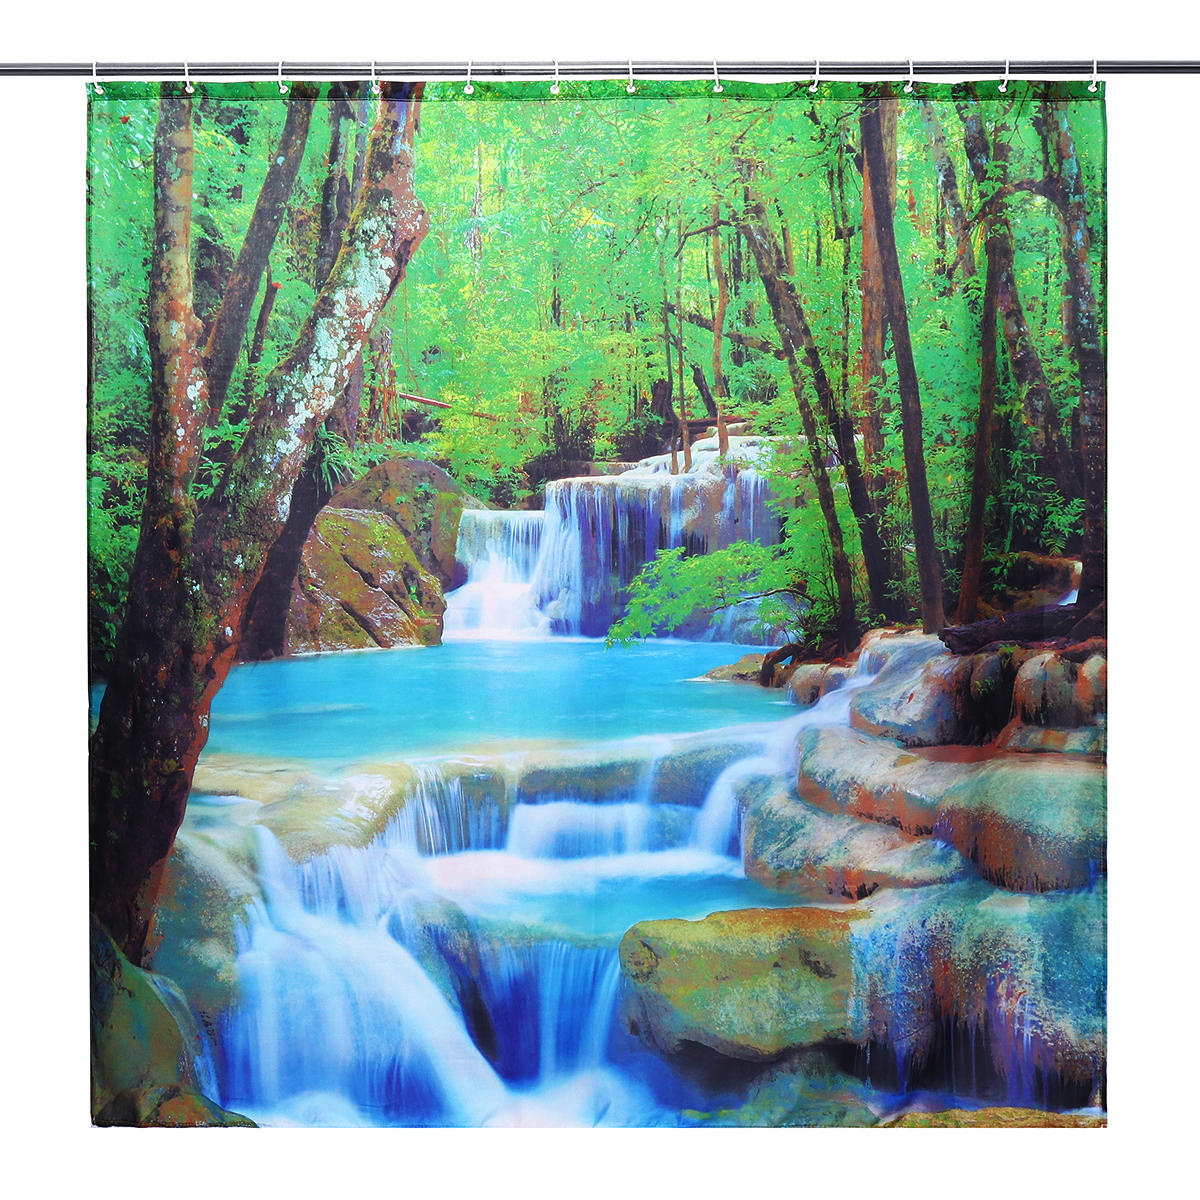 3D Waterfall Nature Scenery Bath Shower Curtain Water Resistant Bathroom Shield